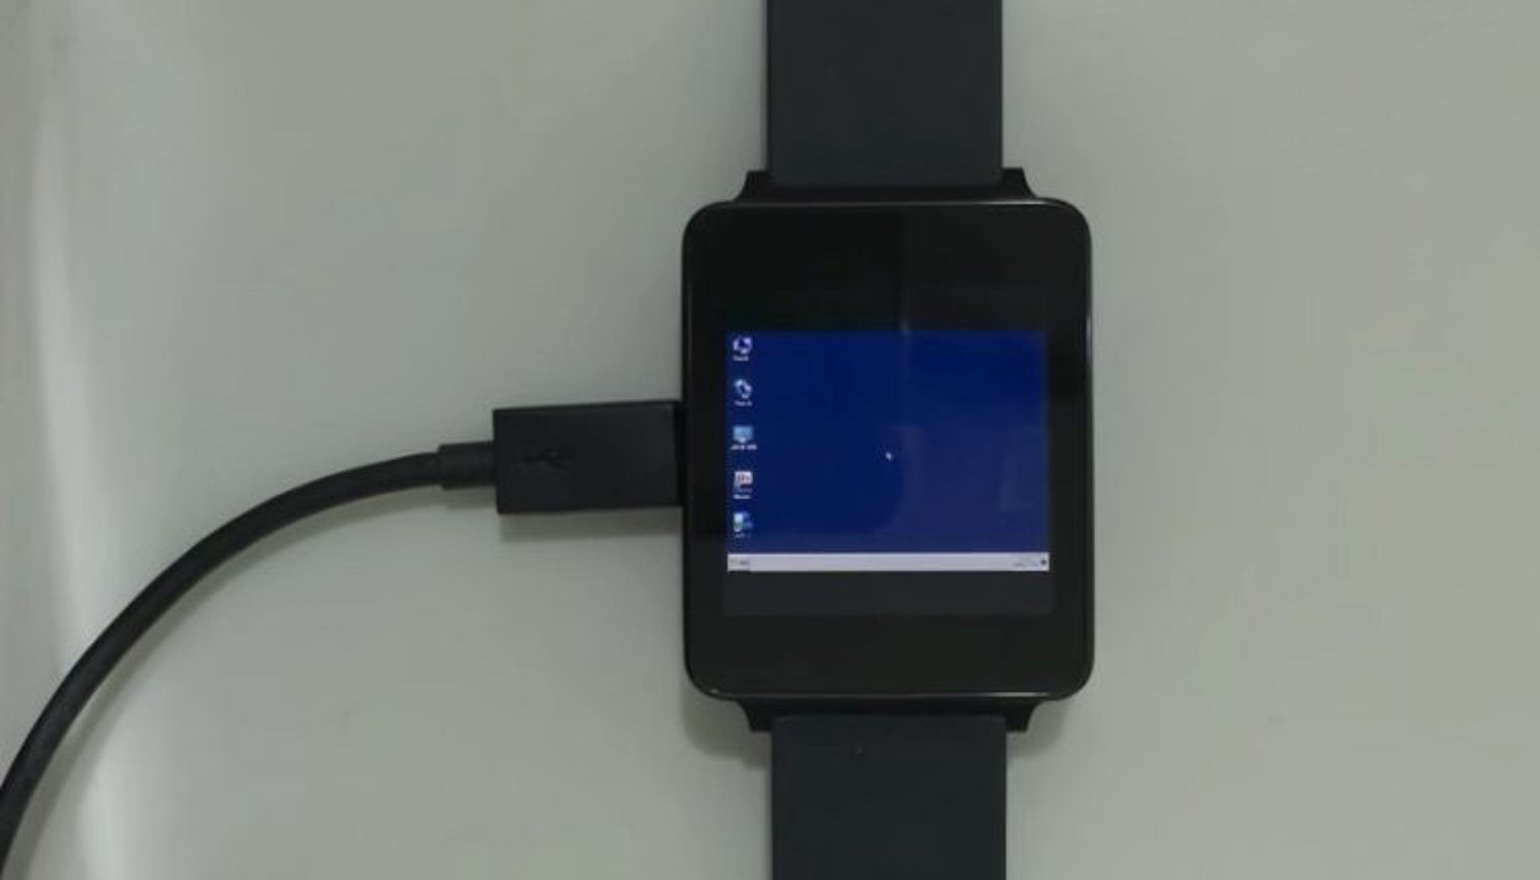 Software-gekken krijgen Windows 7 aan de praat op Android Wear-smartwatch